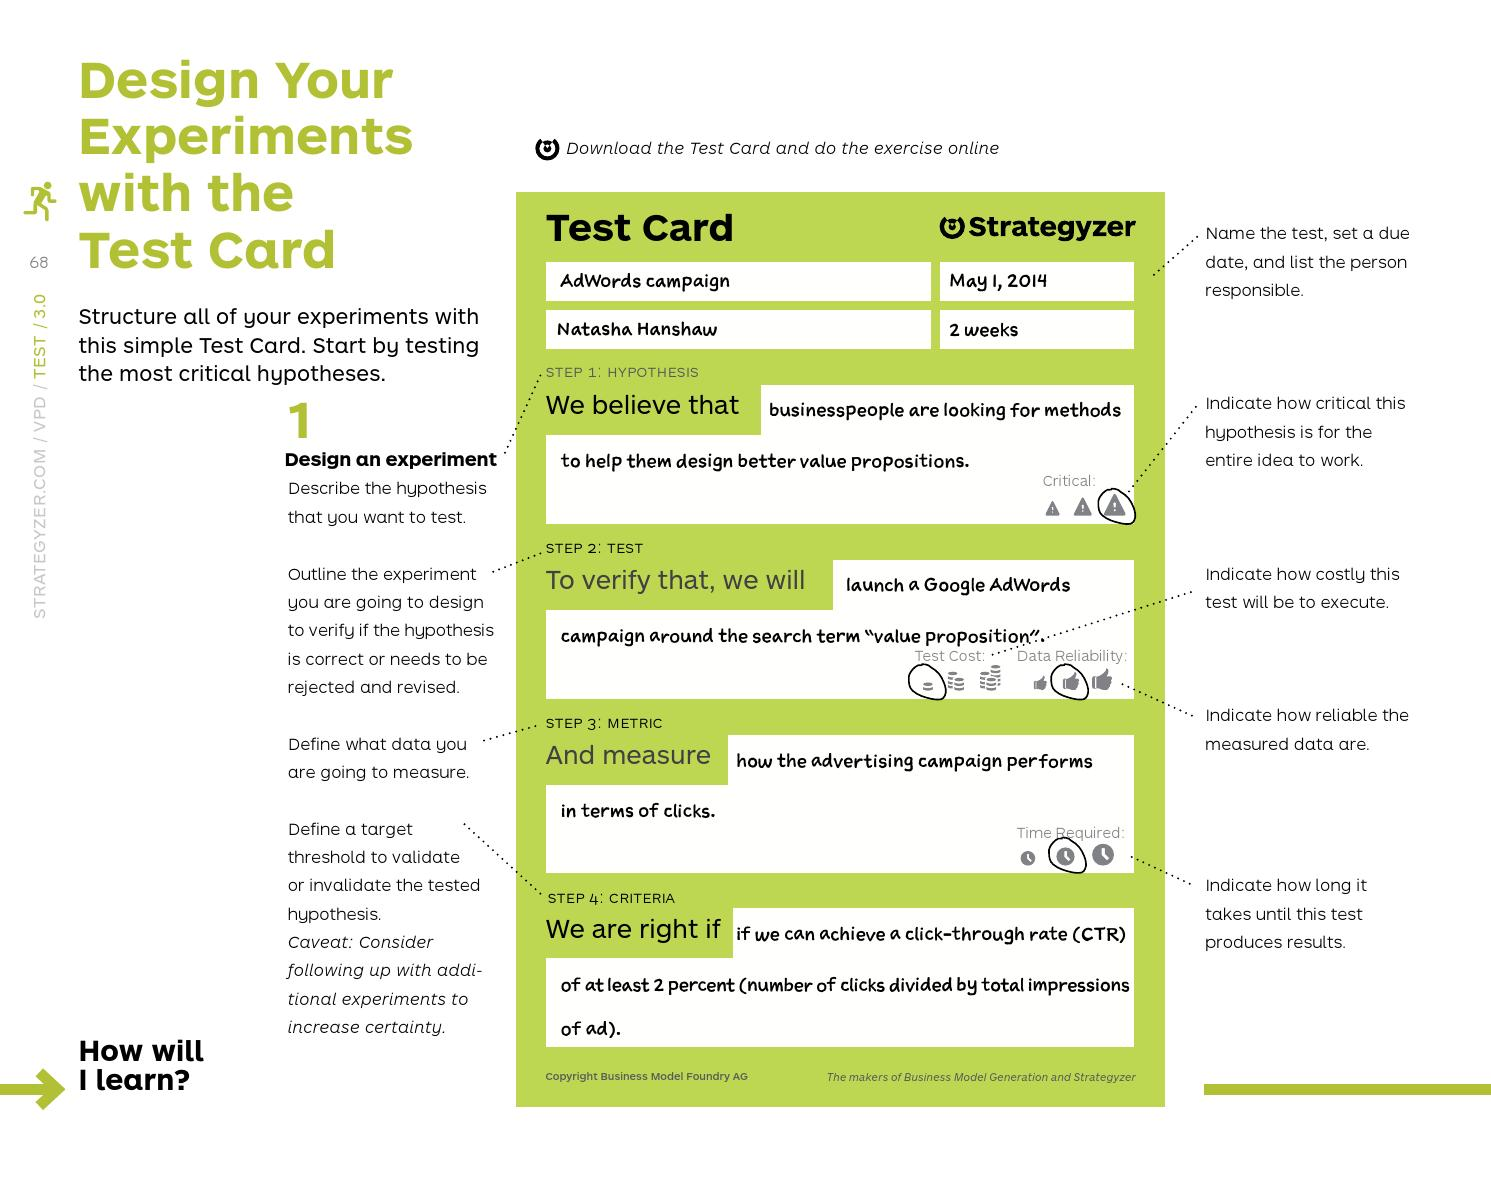 value proposition design preview by strategyzer page 92